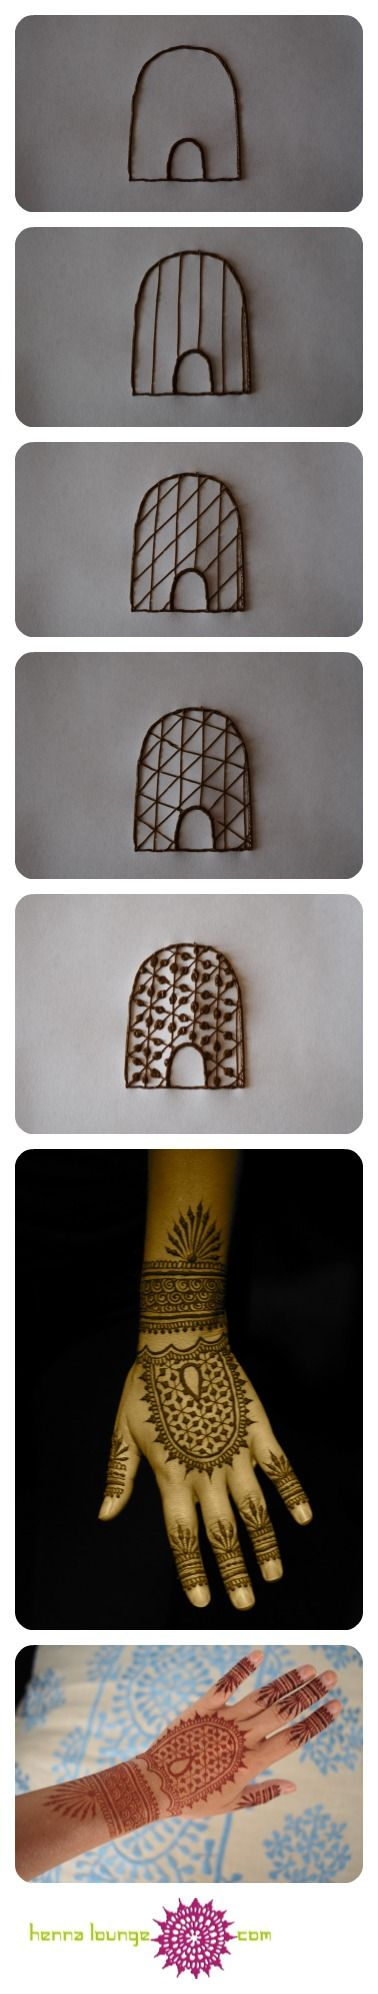 Geometric Henna Tutorial by www.hennalounge.com *for piping henna designs on cake